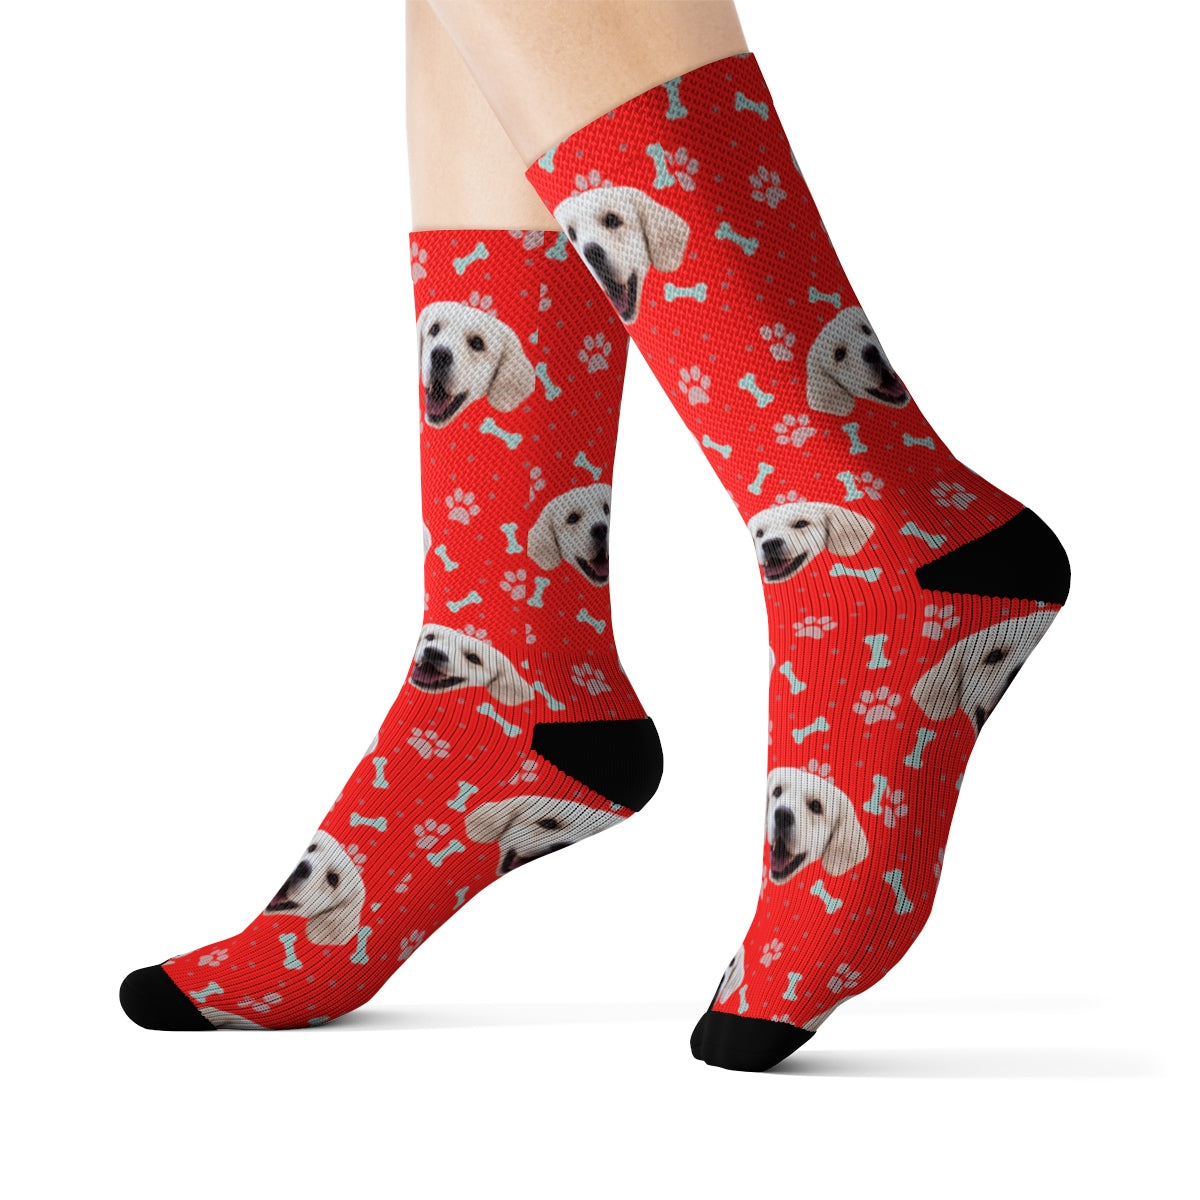 Your Dog On Your Socks